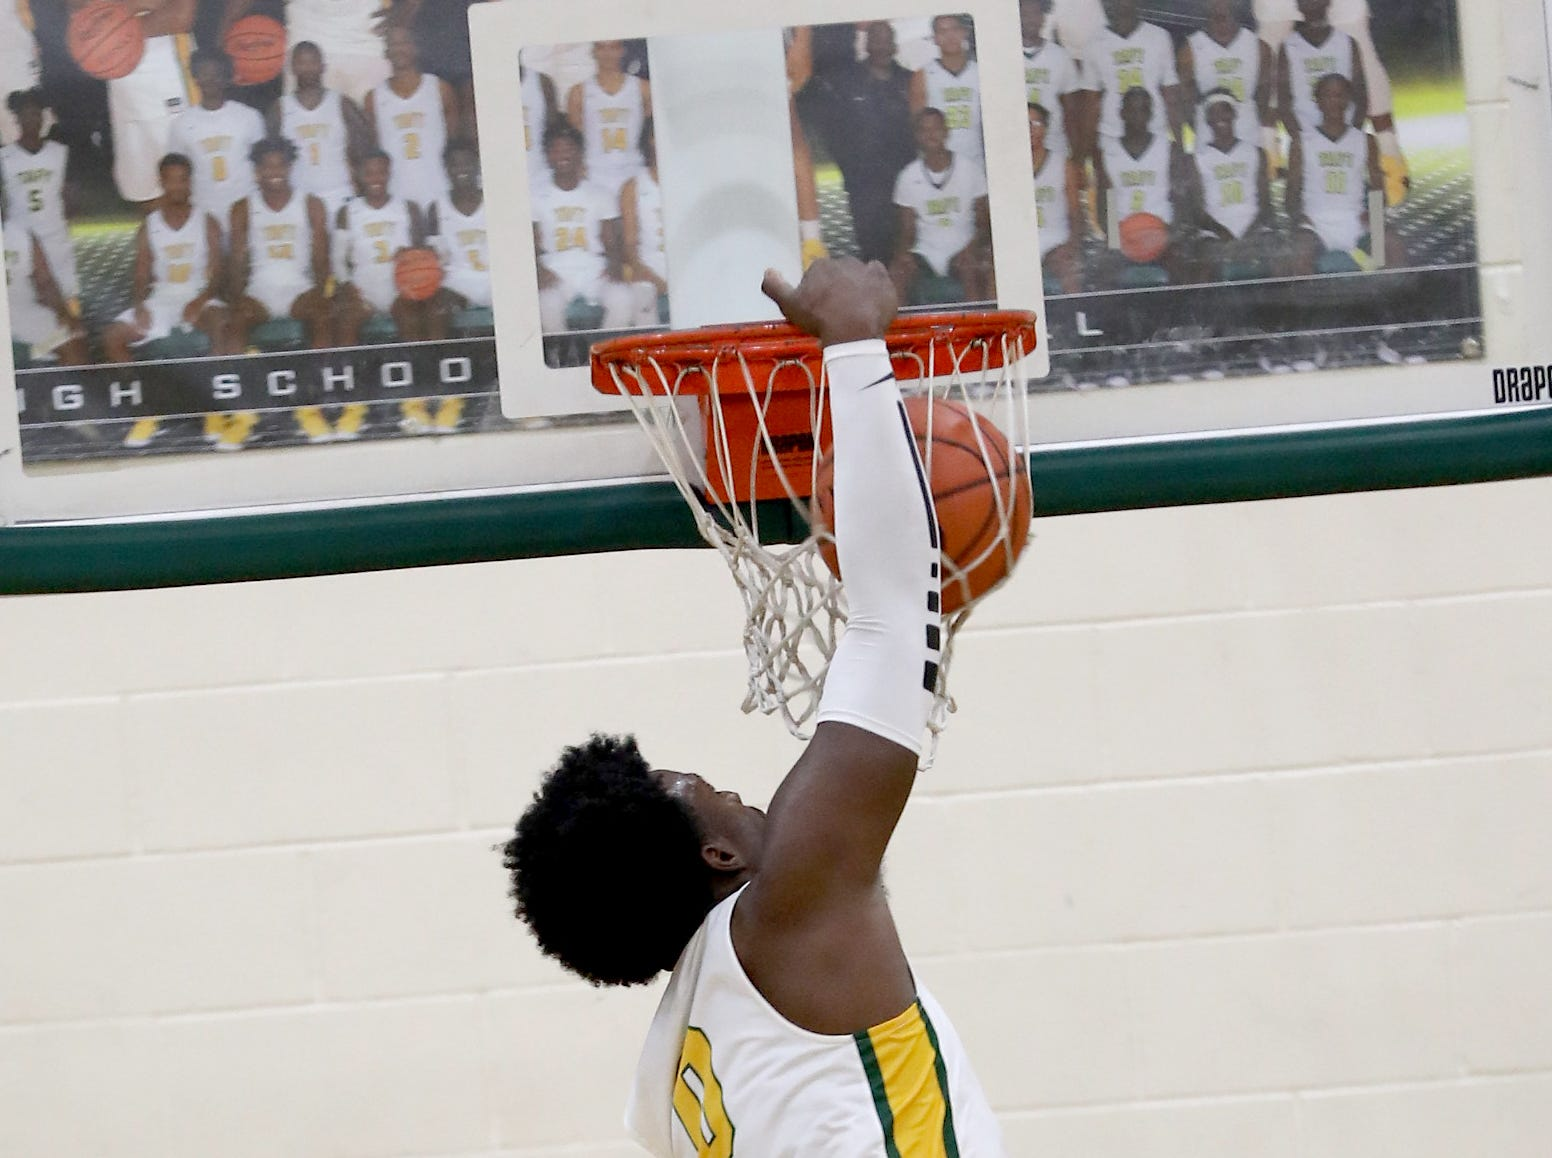 Taft forward Cleveland Farmer dunks.